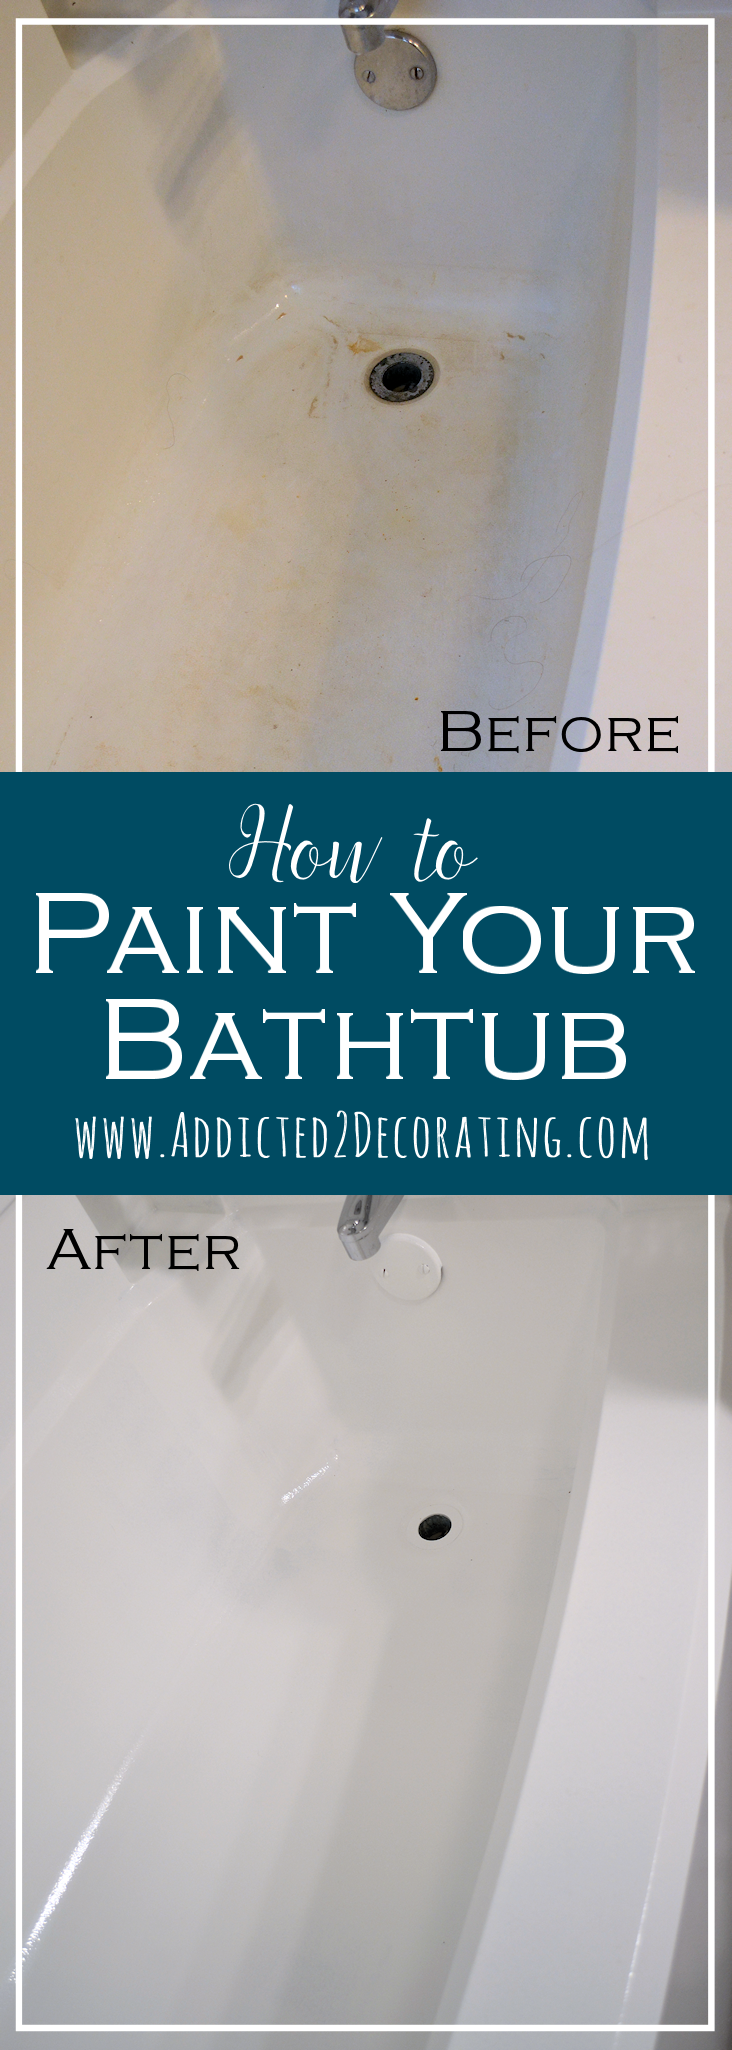 How To Paint Your Bathtub   Before And After